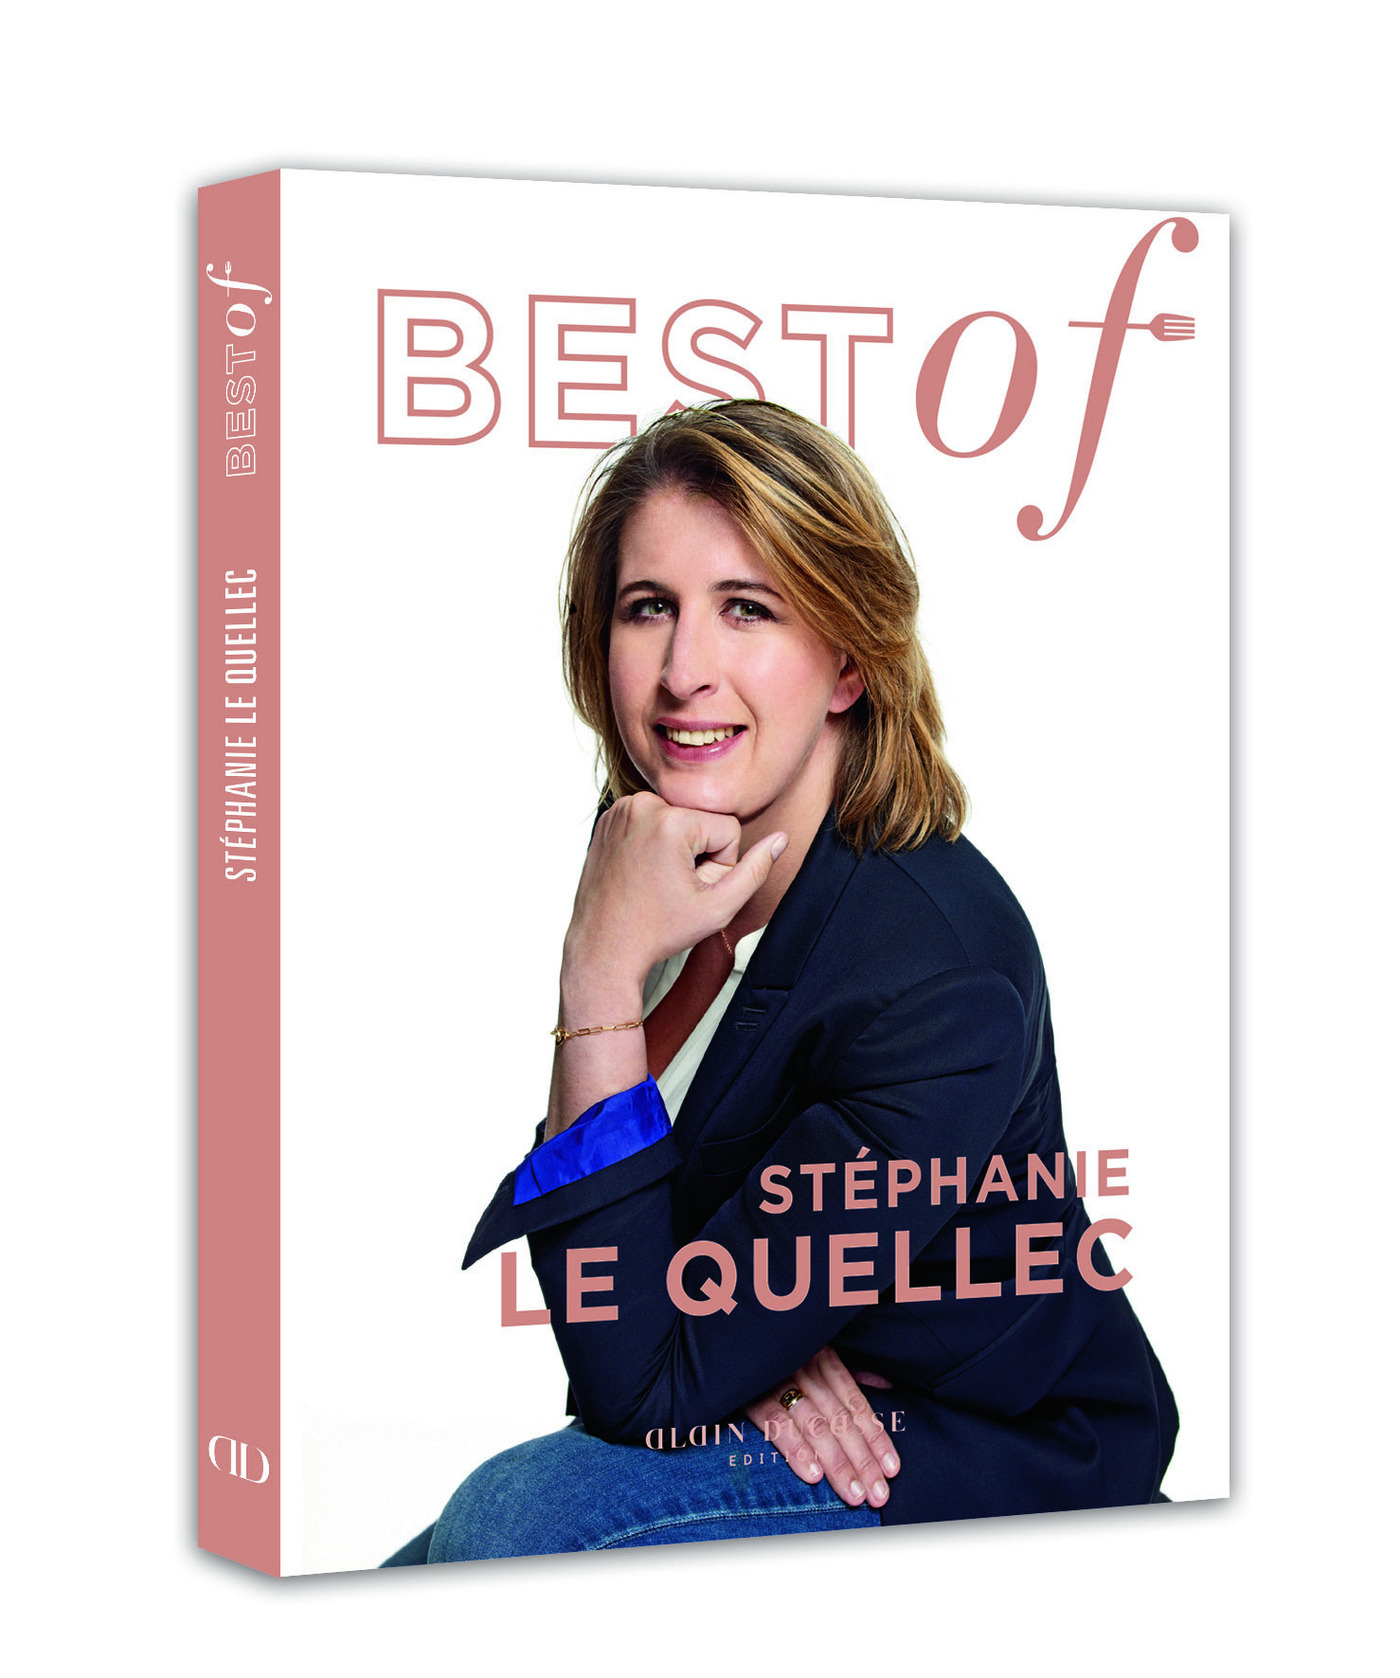 Best of Stéphanie Le Quellec